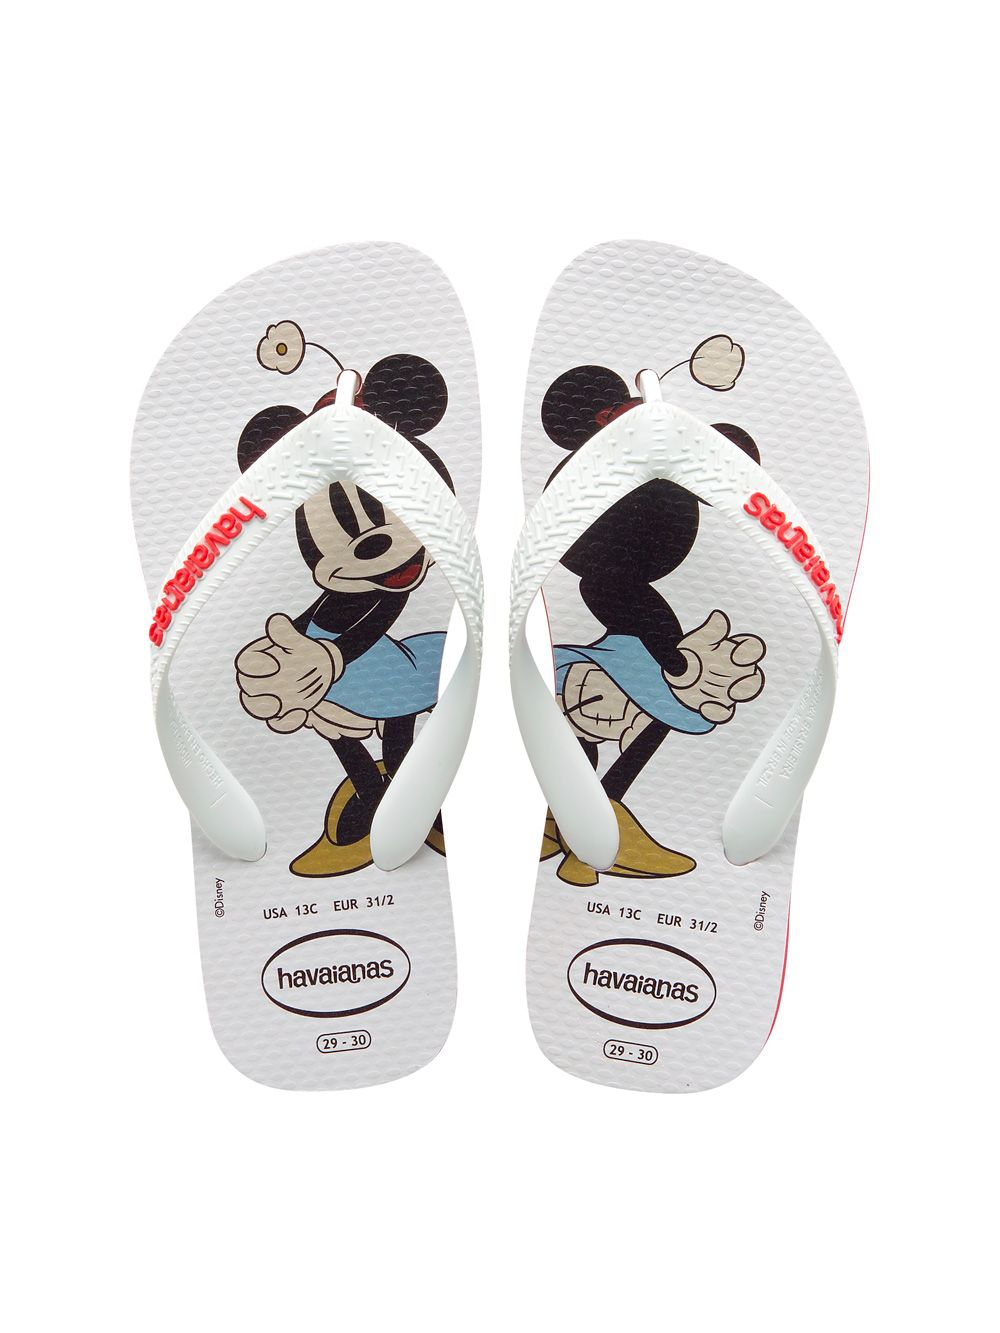 29363f78fb817 Havaianas Kids Disney Stylish Minnie Mouse Flip Flops at Powder Rooms